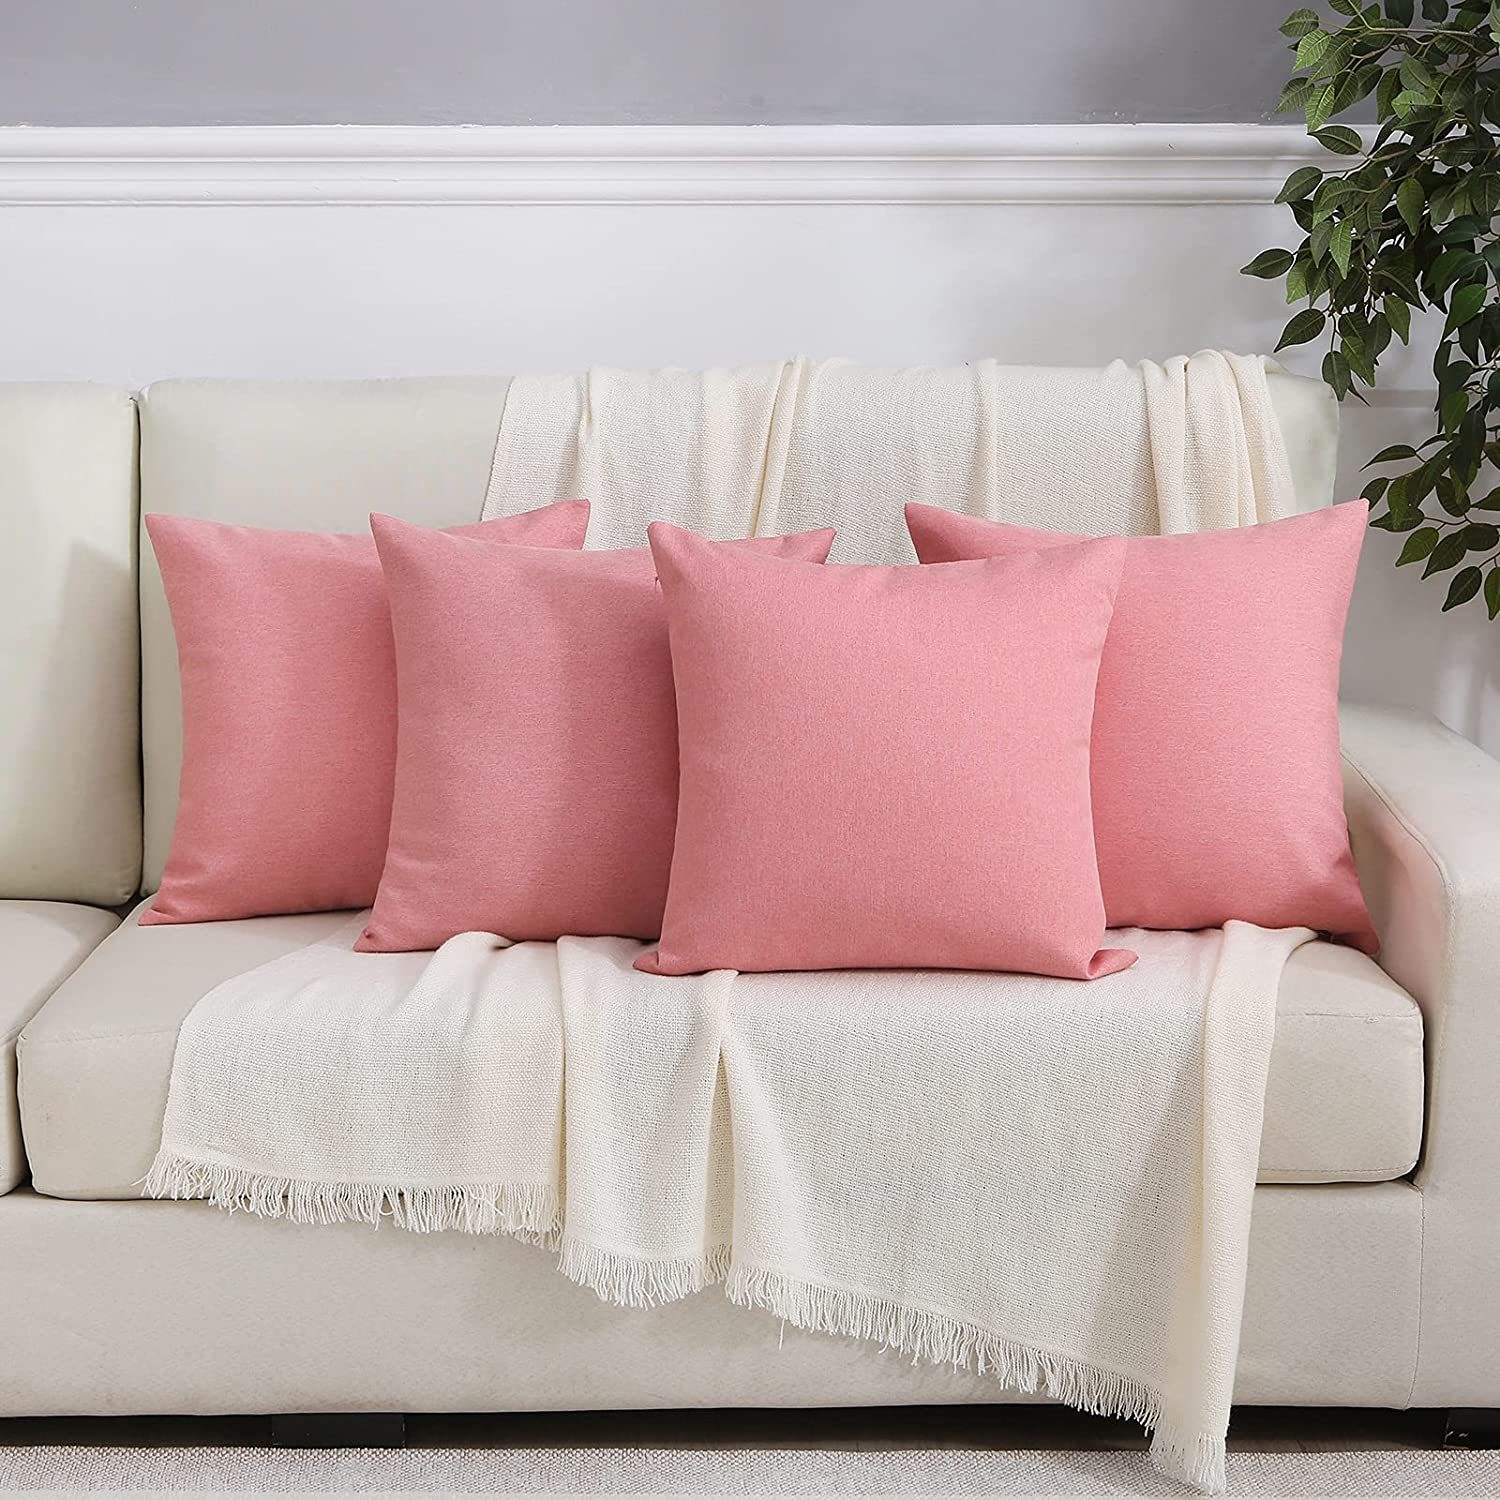 Outdoor Pillow Covers 70% OFF Outlet Patio Max 85% OFF Outside Square Furniture Decorative